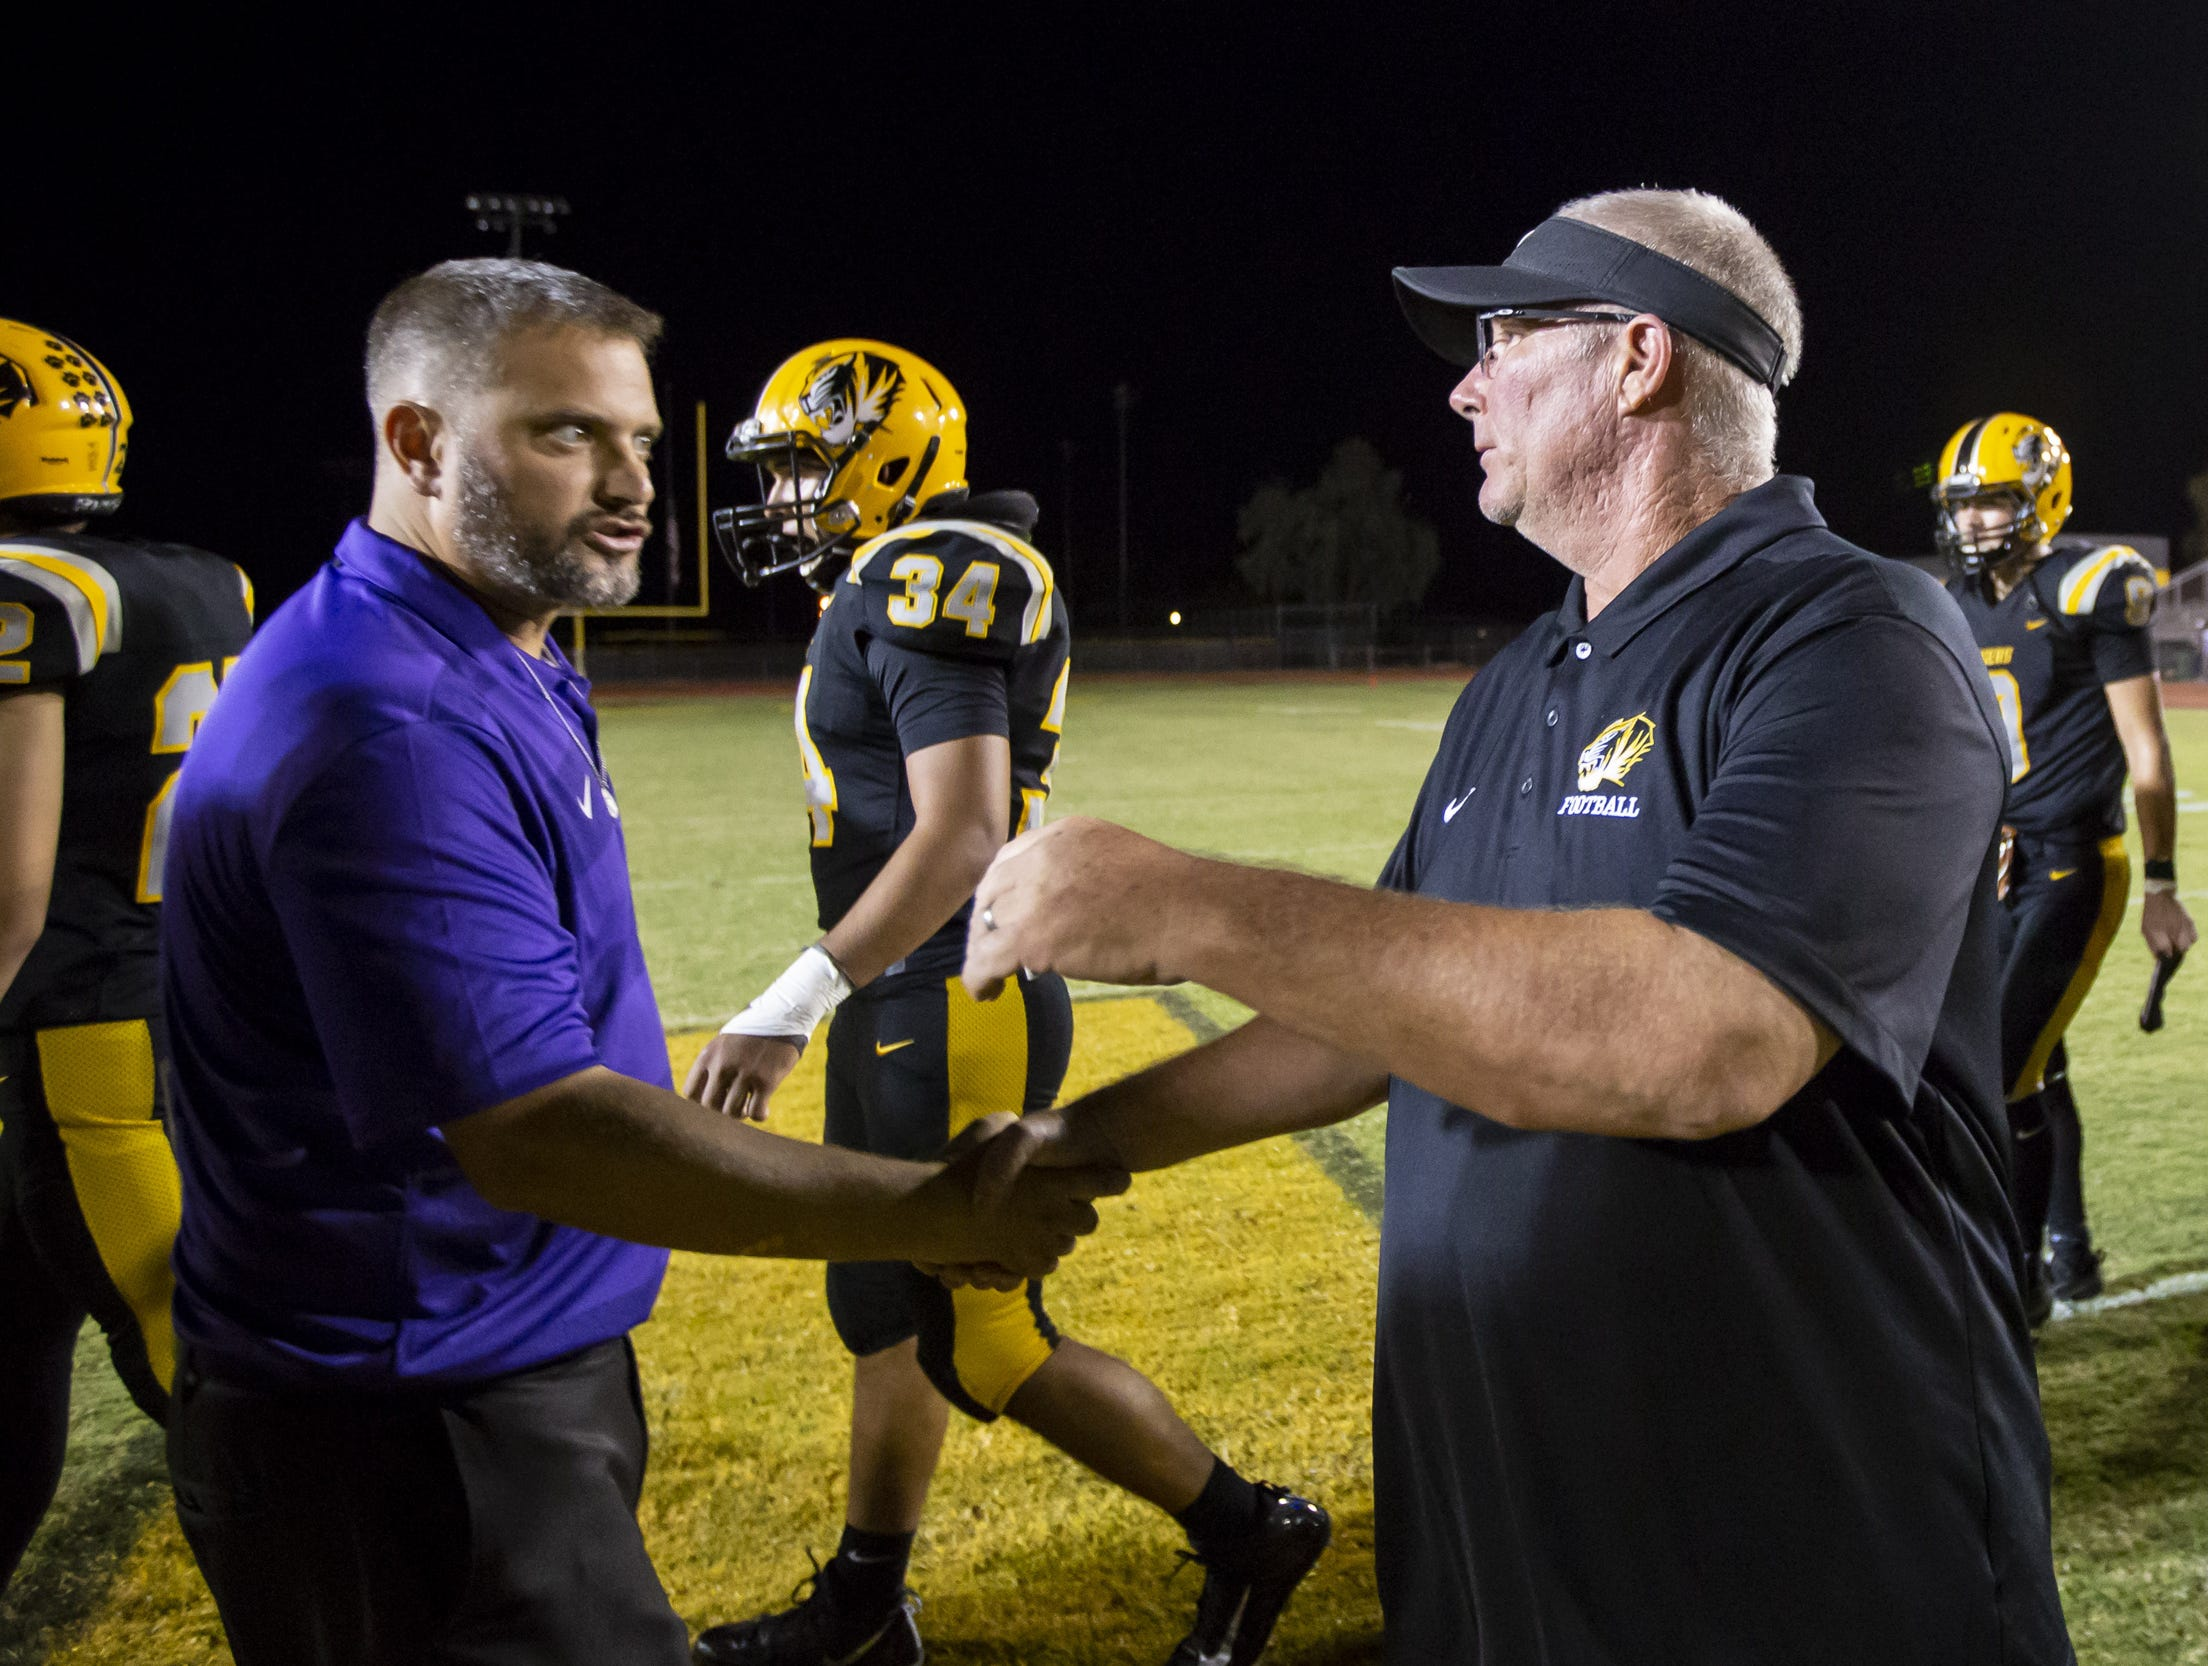 Head coach George Prelock of the Notre Dame Prep Saints (L) and head coach Derek Zellner of the Gilbert Tigers (R) shake hands following the game at Gilbert High School on Friday, Aug. 31, 2018 in Gilbert, Arizona.